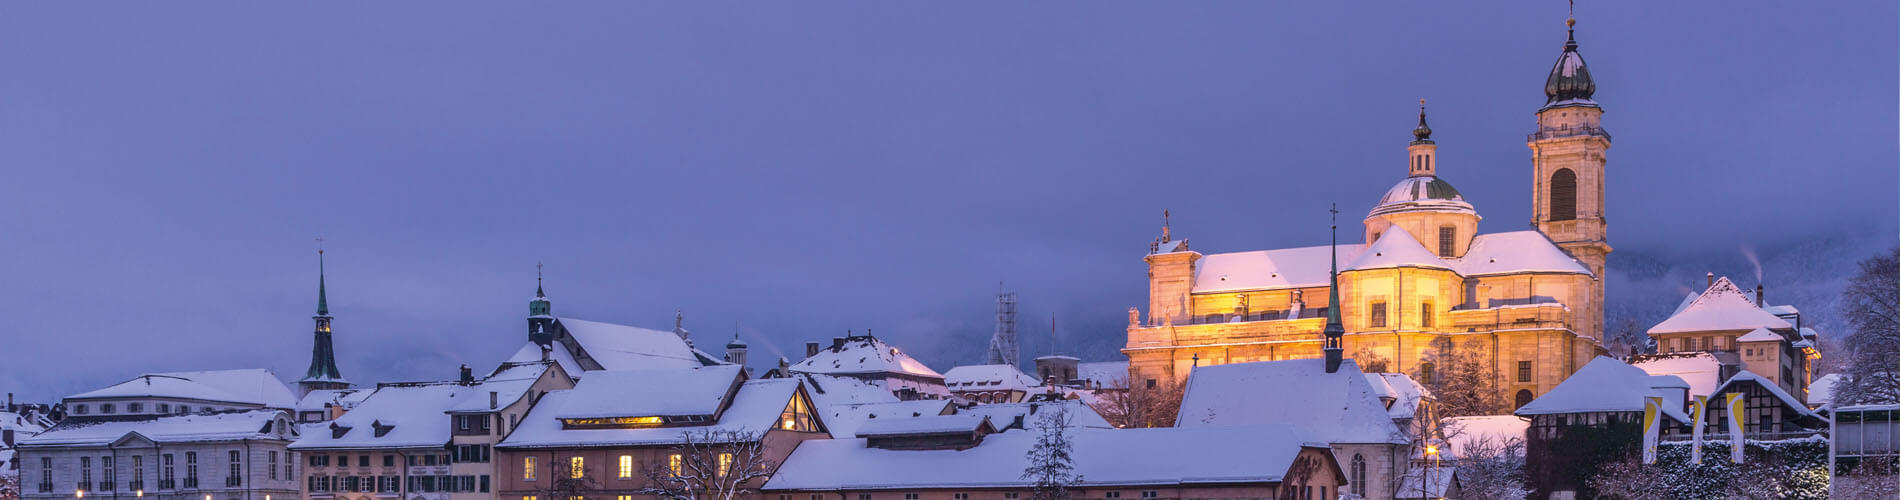 Cathedral Andermatt Best Christmas Market Tour with Snow in 2021